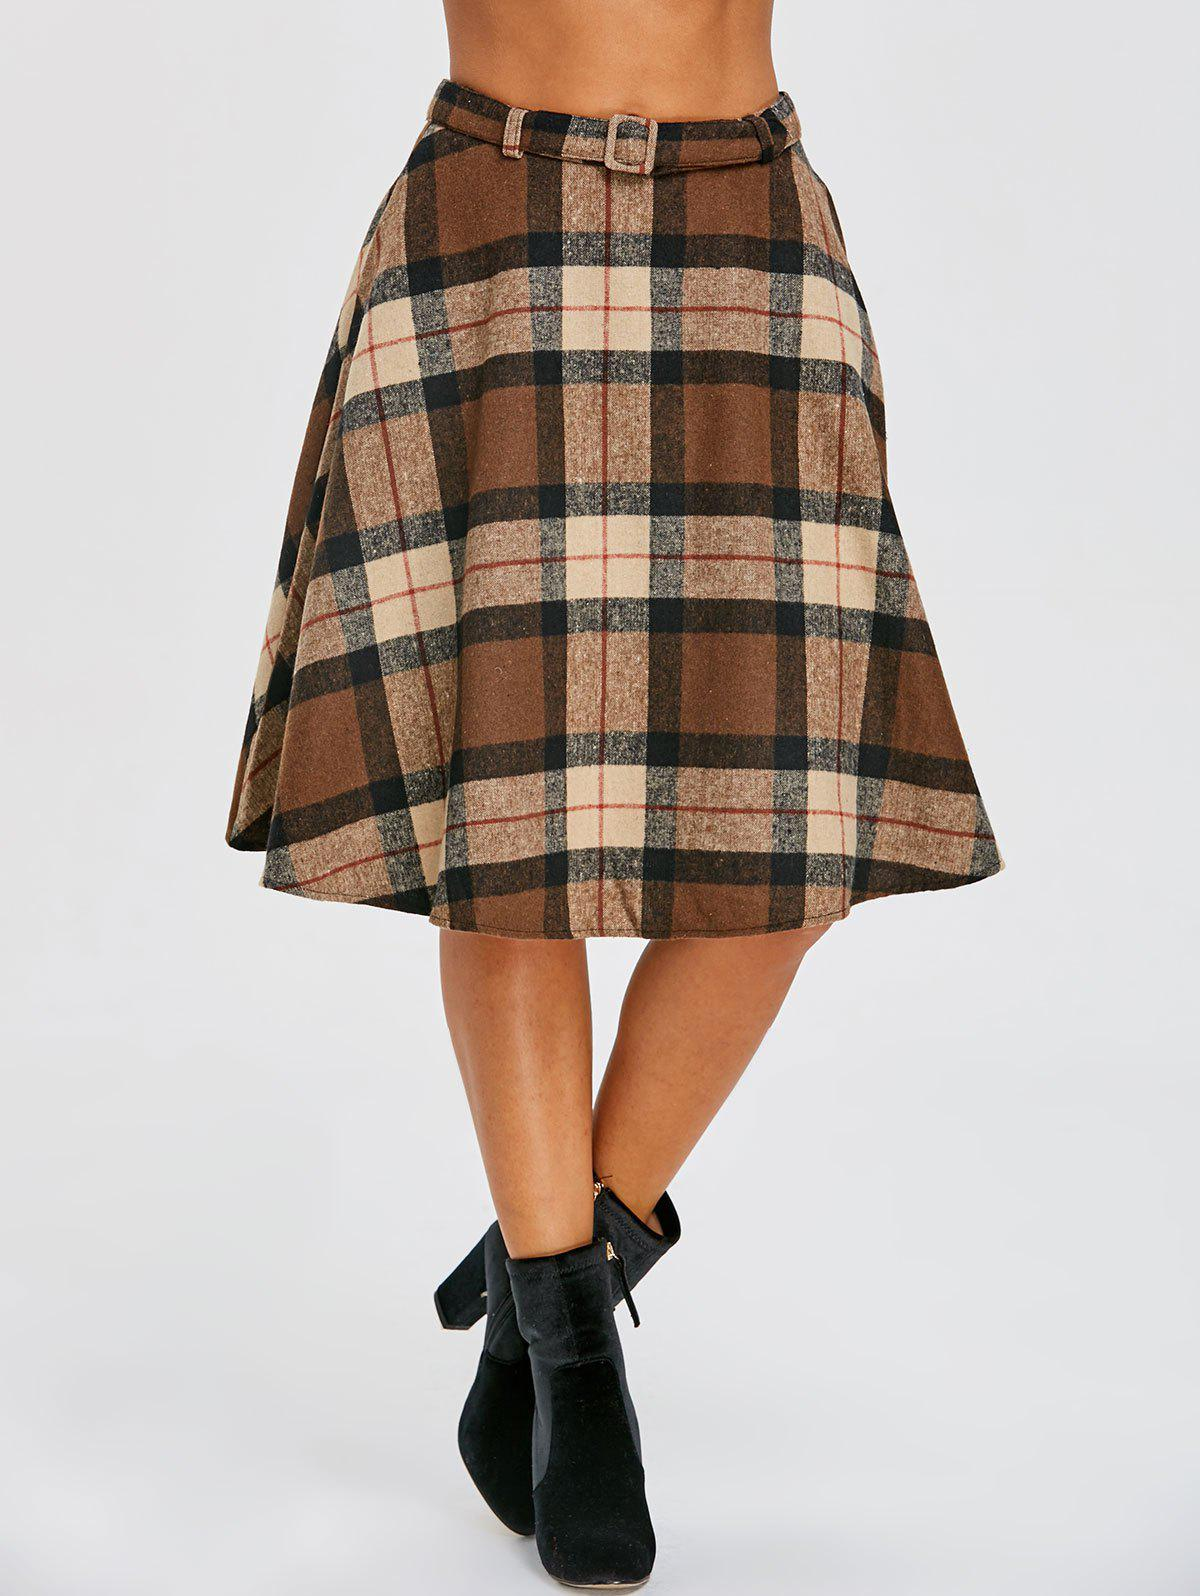 Plaid High Waisted A Line Skirt - DARK KHAKI L